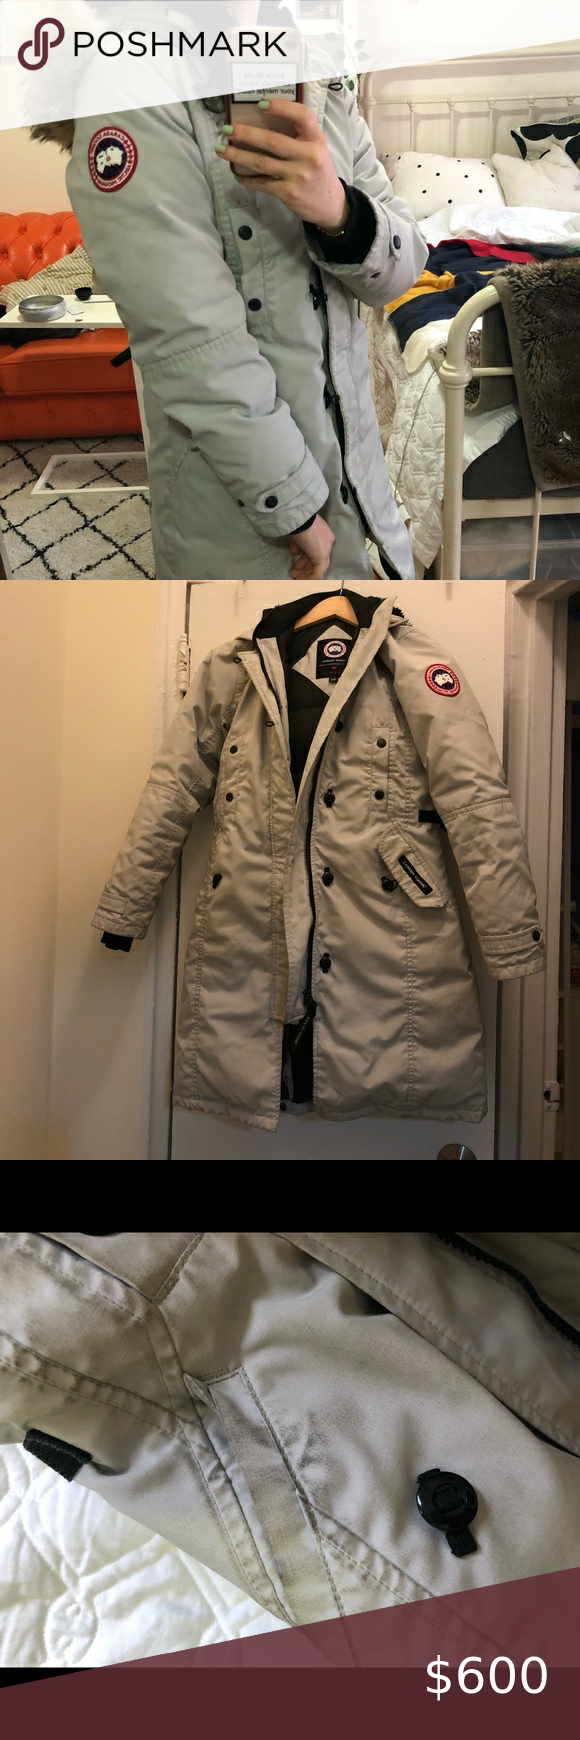 Rare Canada Goose Trillium With Fur Hood Love This One Because It S Not The Same Black Jacket Every B Tch In Nyc Has In 2020 Fur Hood Black Jacket Jackets For Women